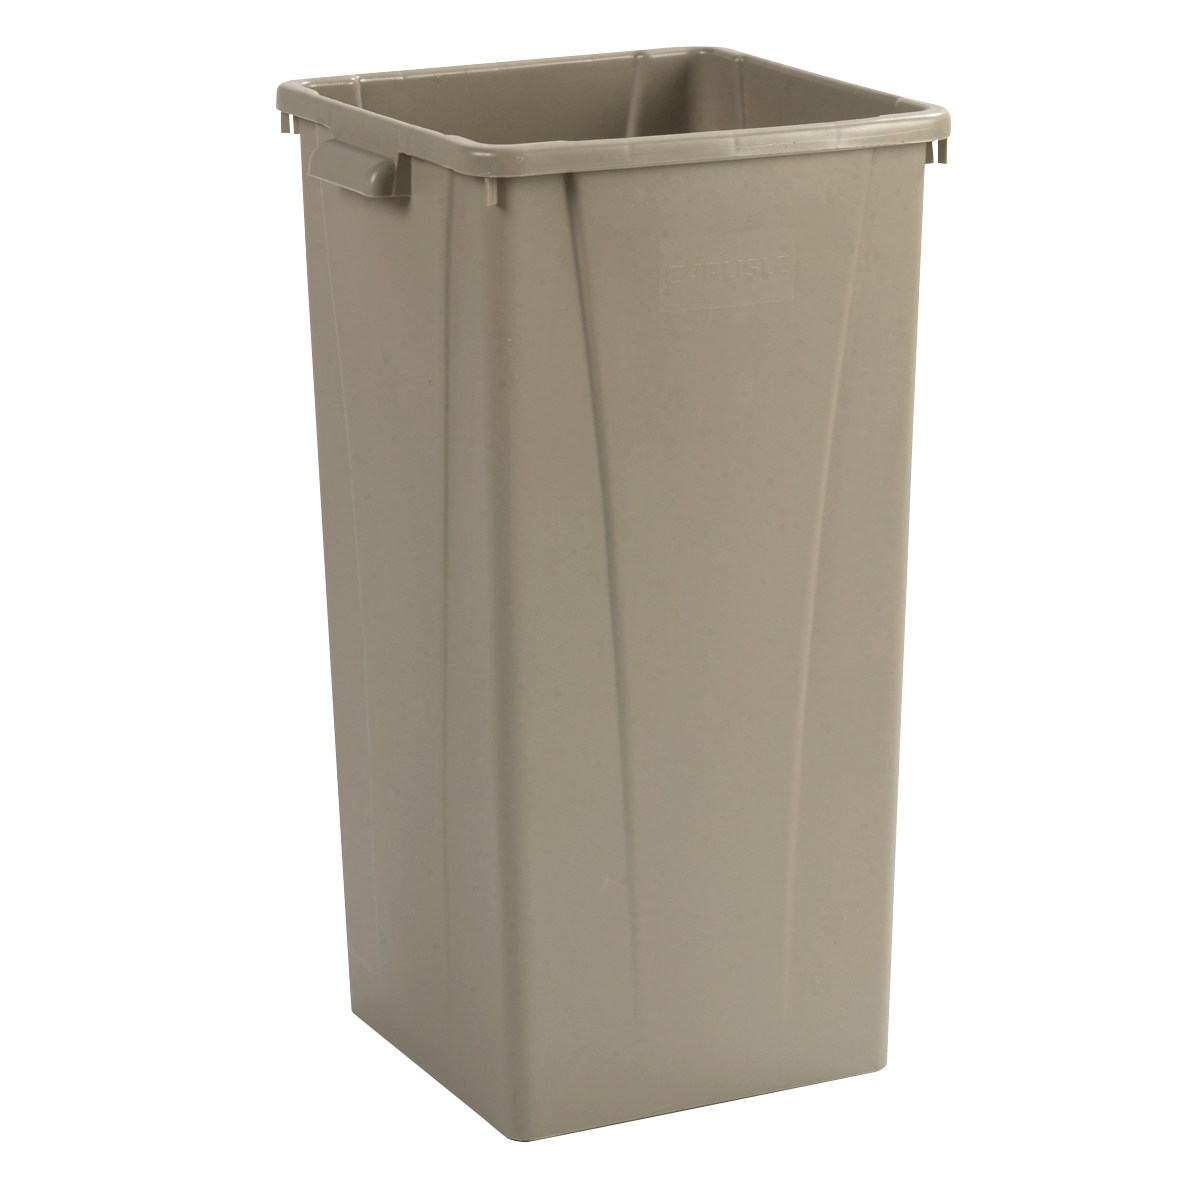 Tall Narrow Trash Can 34352306 Centurian Square Tall Waste Container Trash